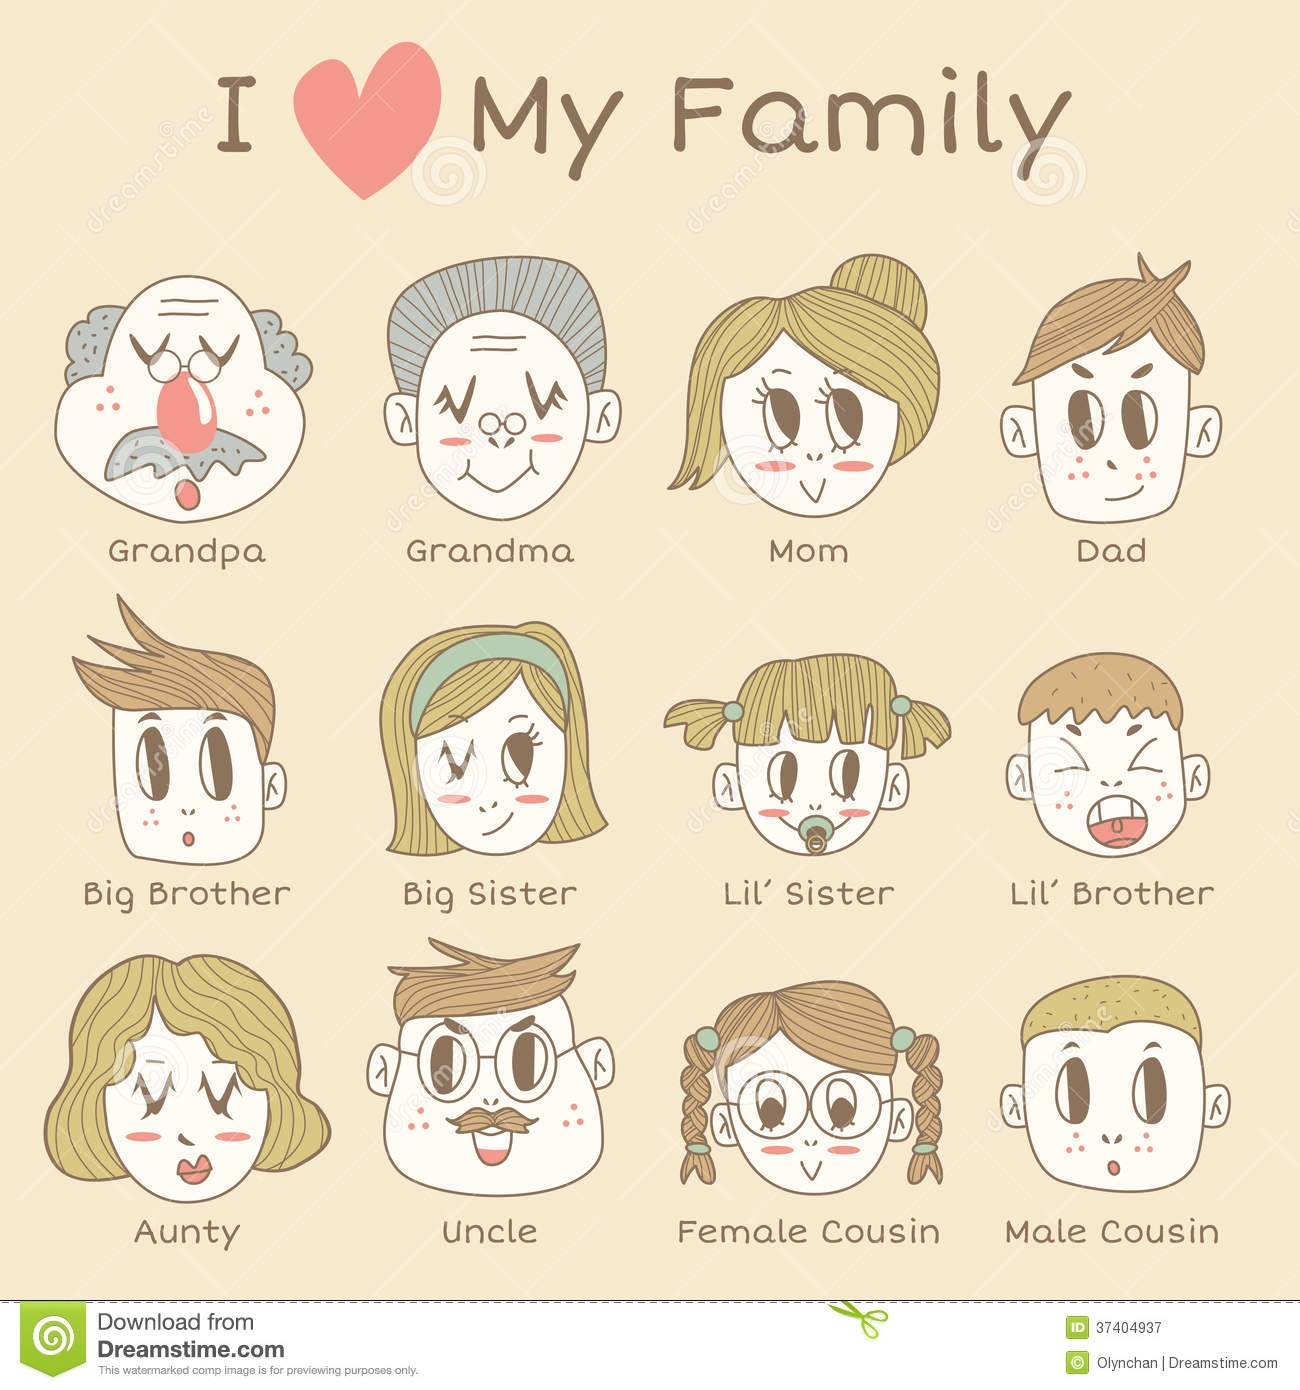 Clipart Images Of Family Members